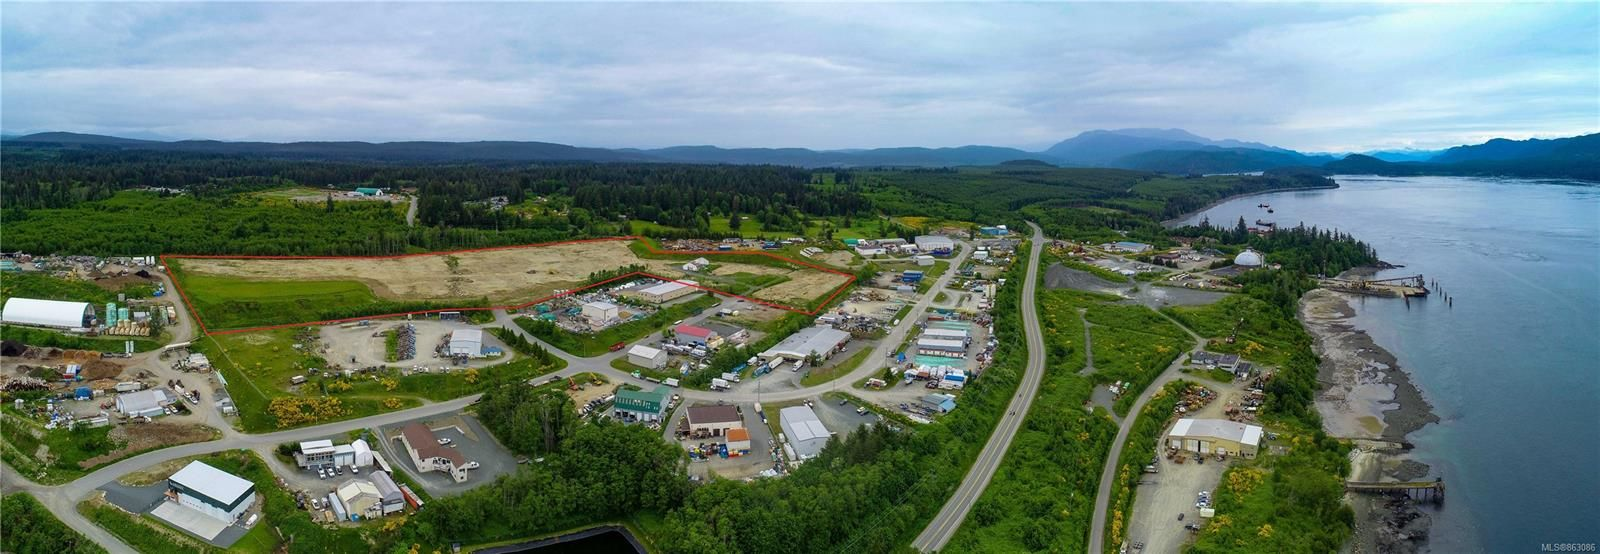 Main Photo: 4300 Midport Rd in : CR Campbell River North Business for sale (Campbell River)  : MLS®# 863086